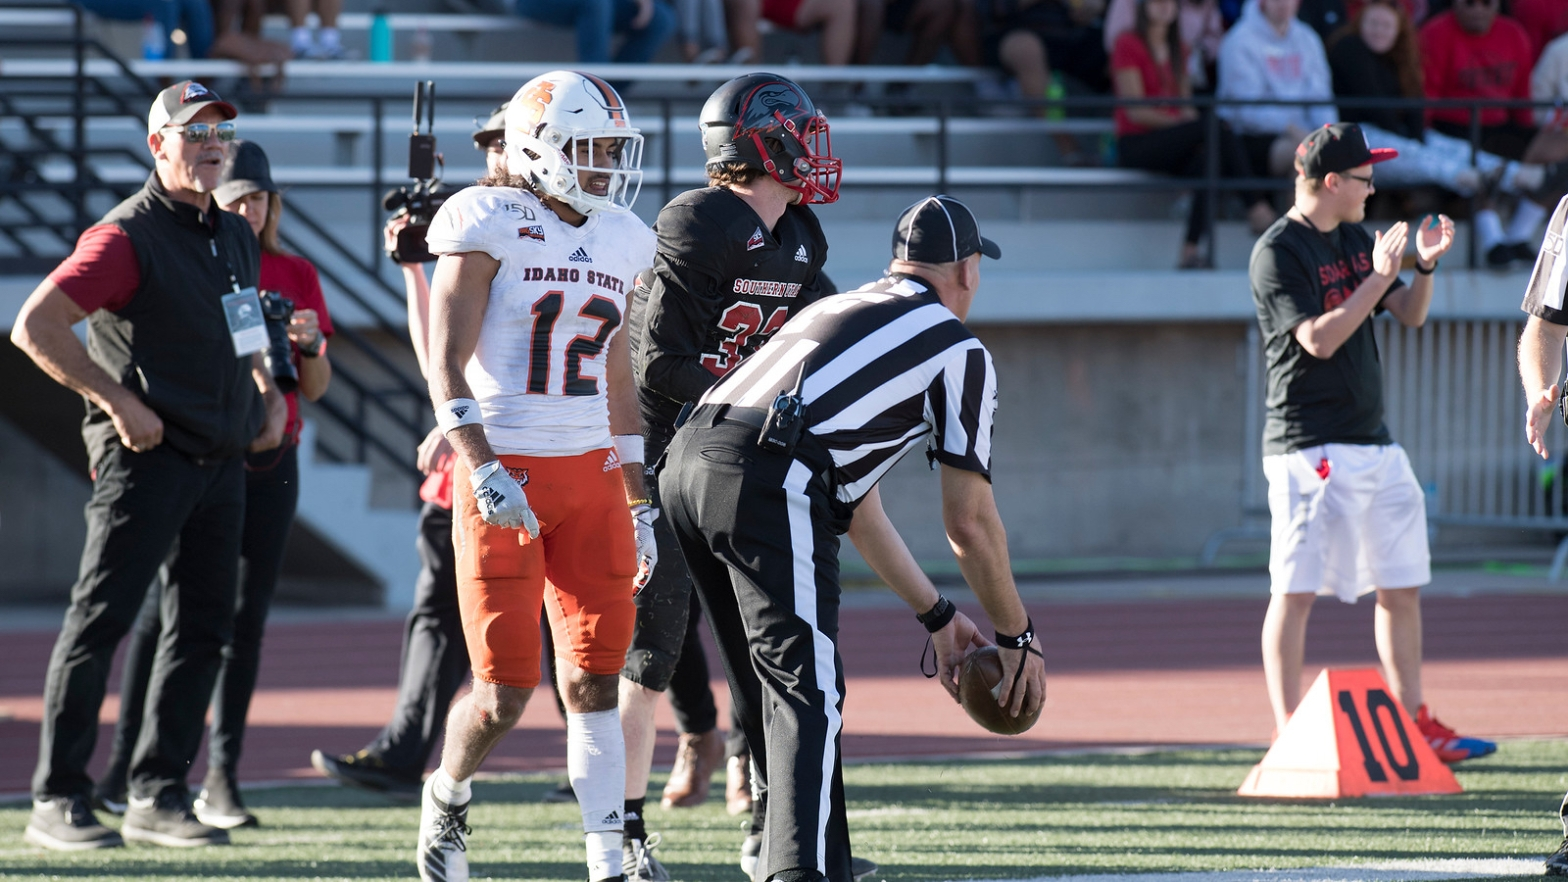 Idaho State defender looks on as SUU scores